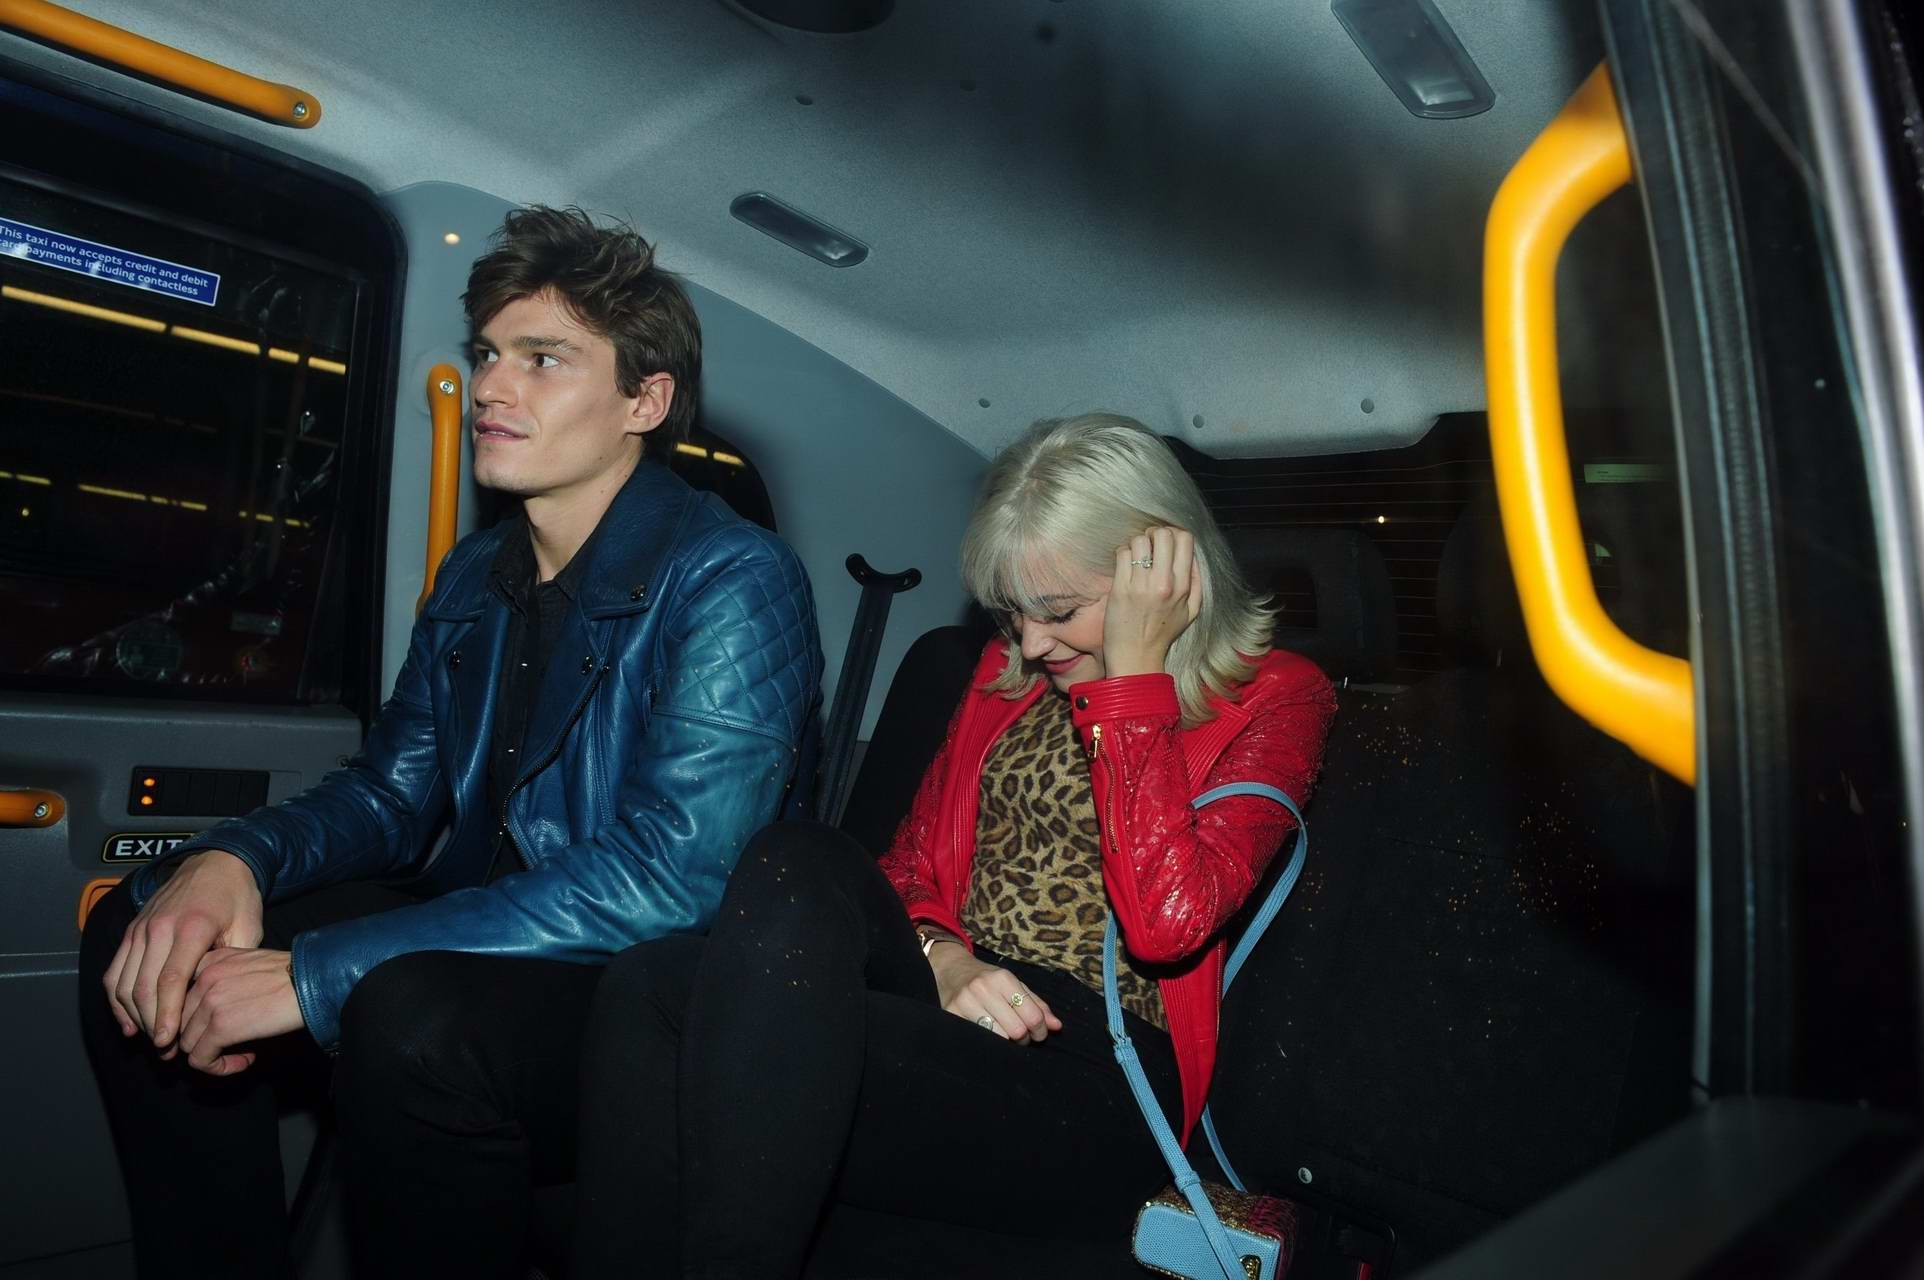 Pixie Lott on a night out with her fiance Oliver Cheshire in London